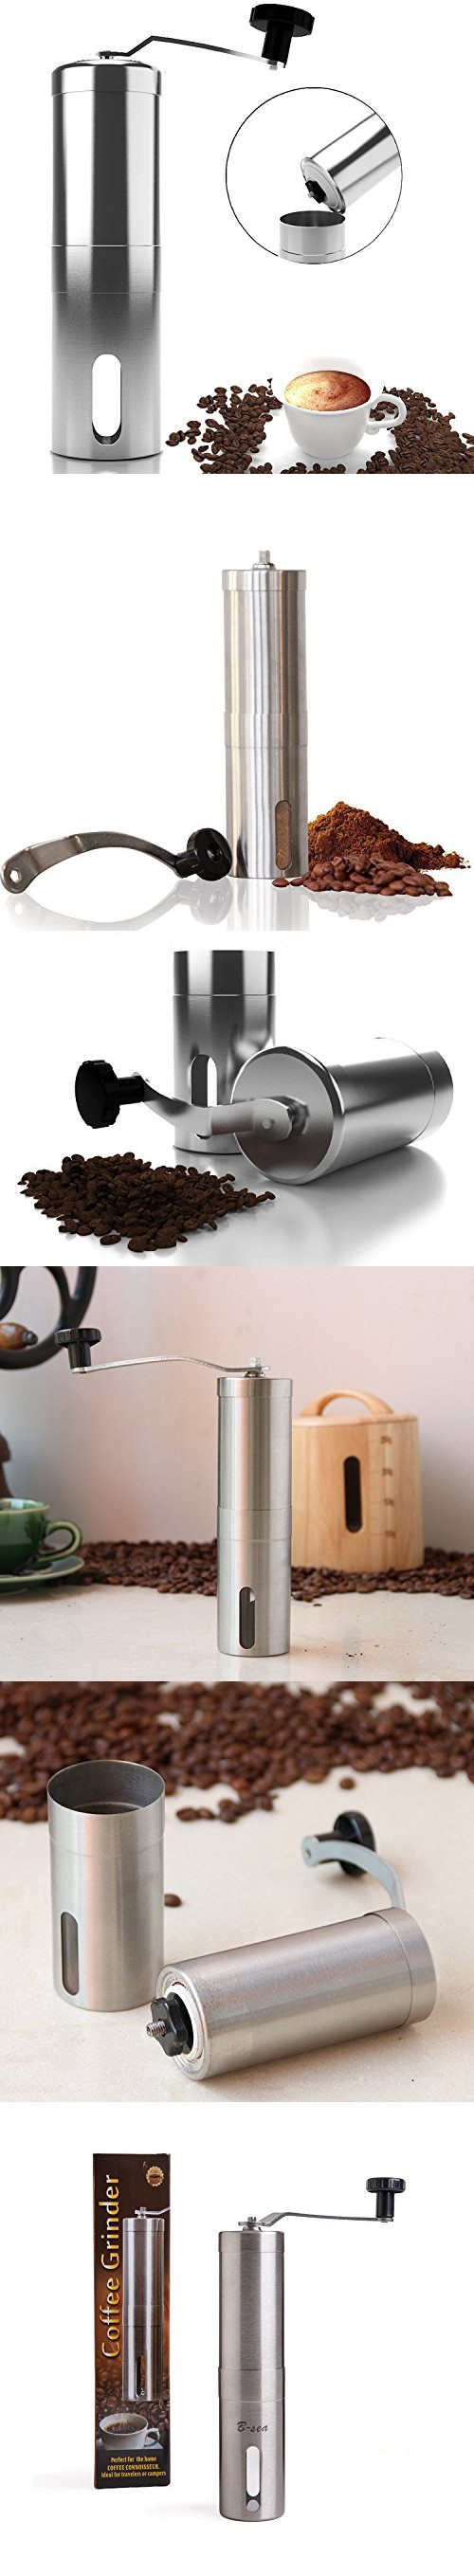 Top Rated Manual Coffee Grinder Maker Best Spice & Coffee